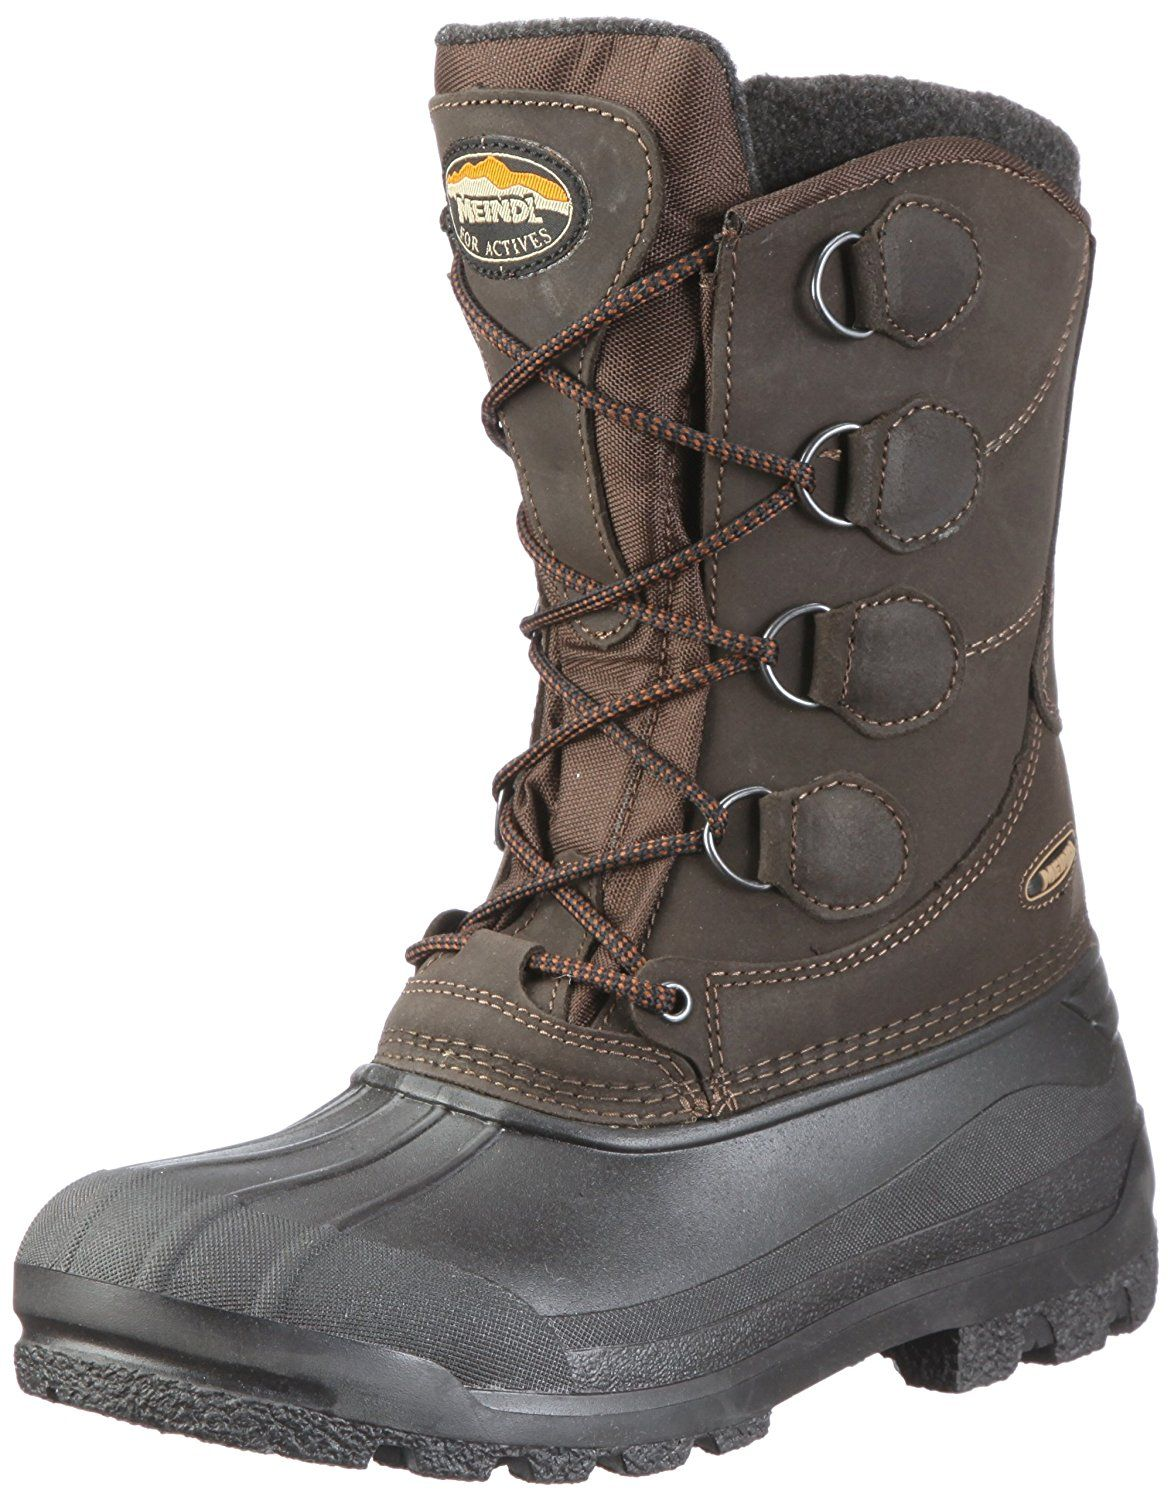 105b6b659eb Meindl mens boots brown/pink ** Check this awesome product by going ...